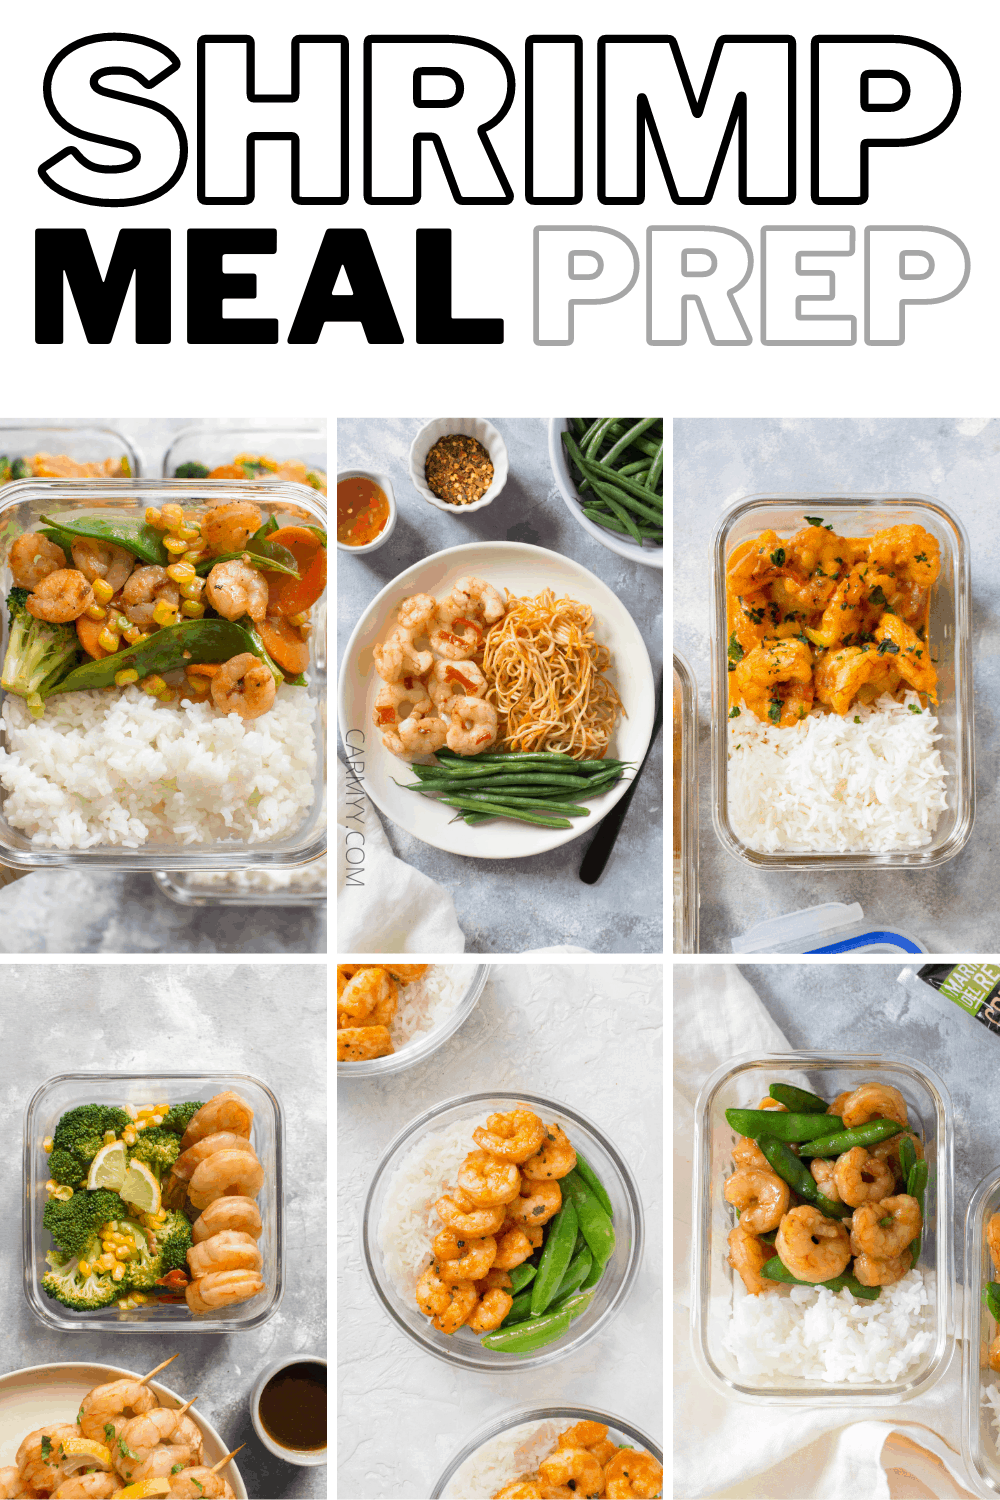 Looking for some delicious and healthy shrimp meal prep recipes? Here are a collection of some of my favourites!